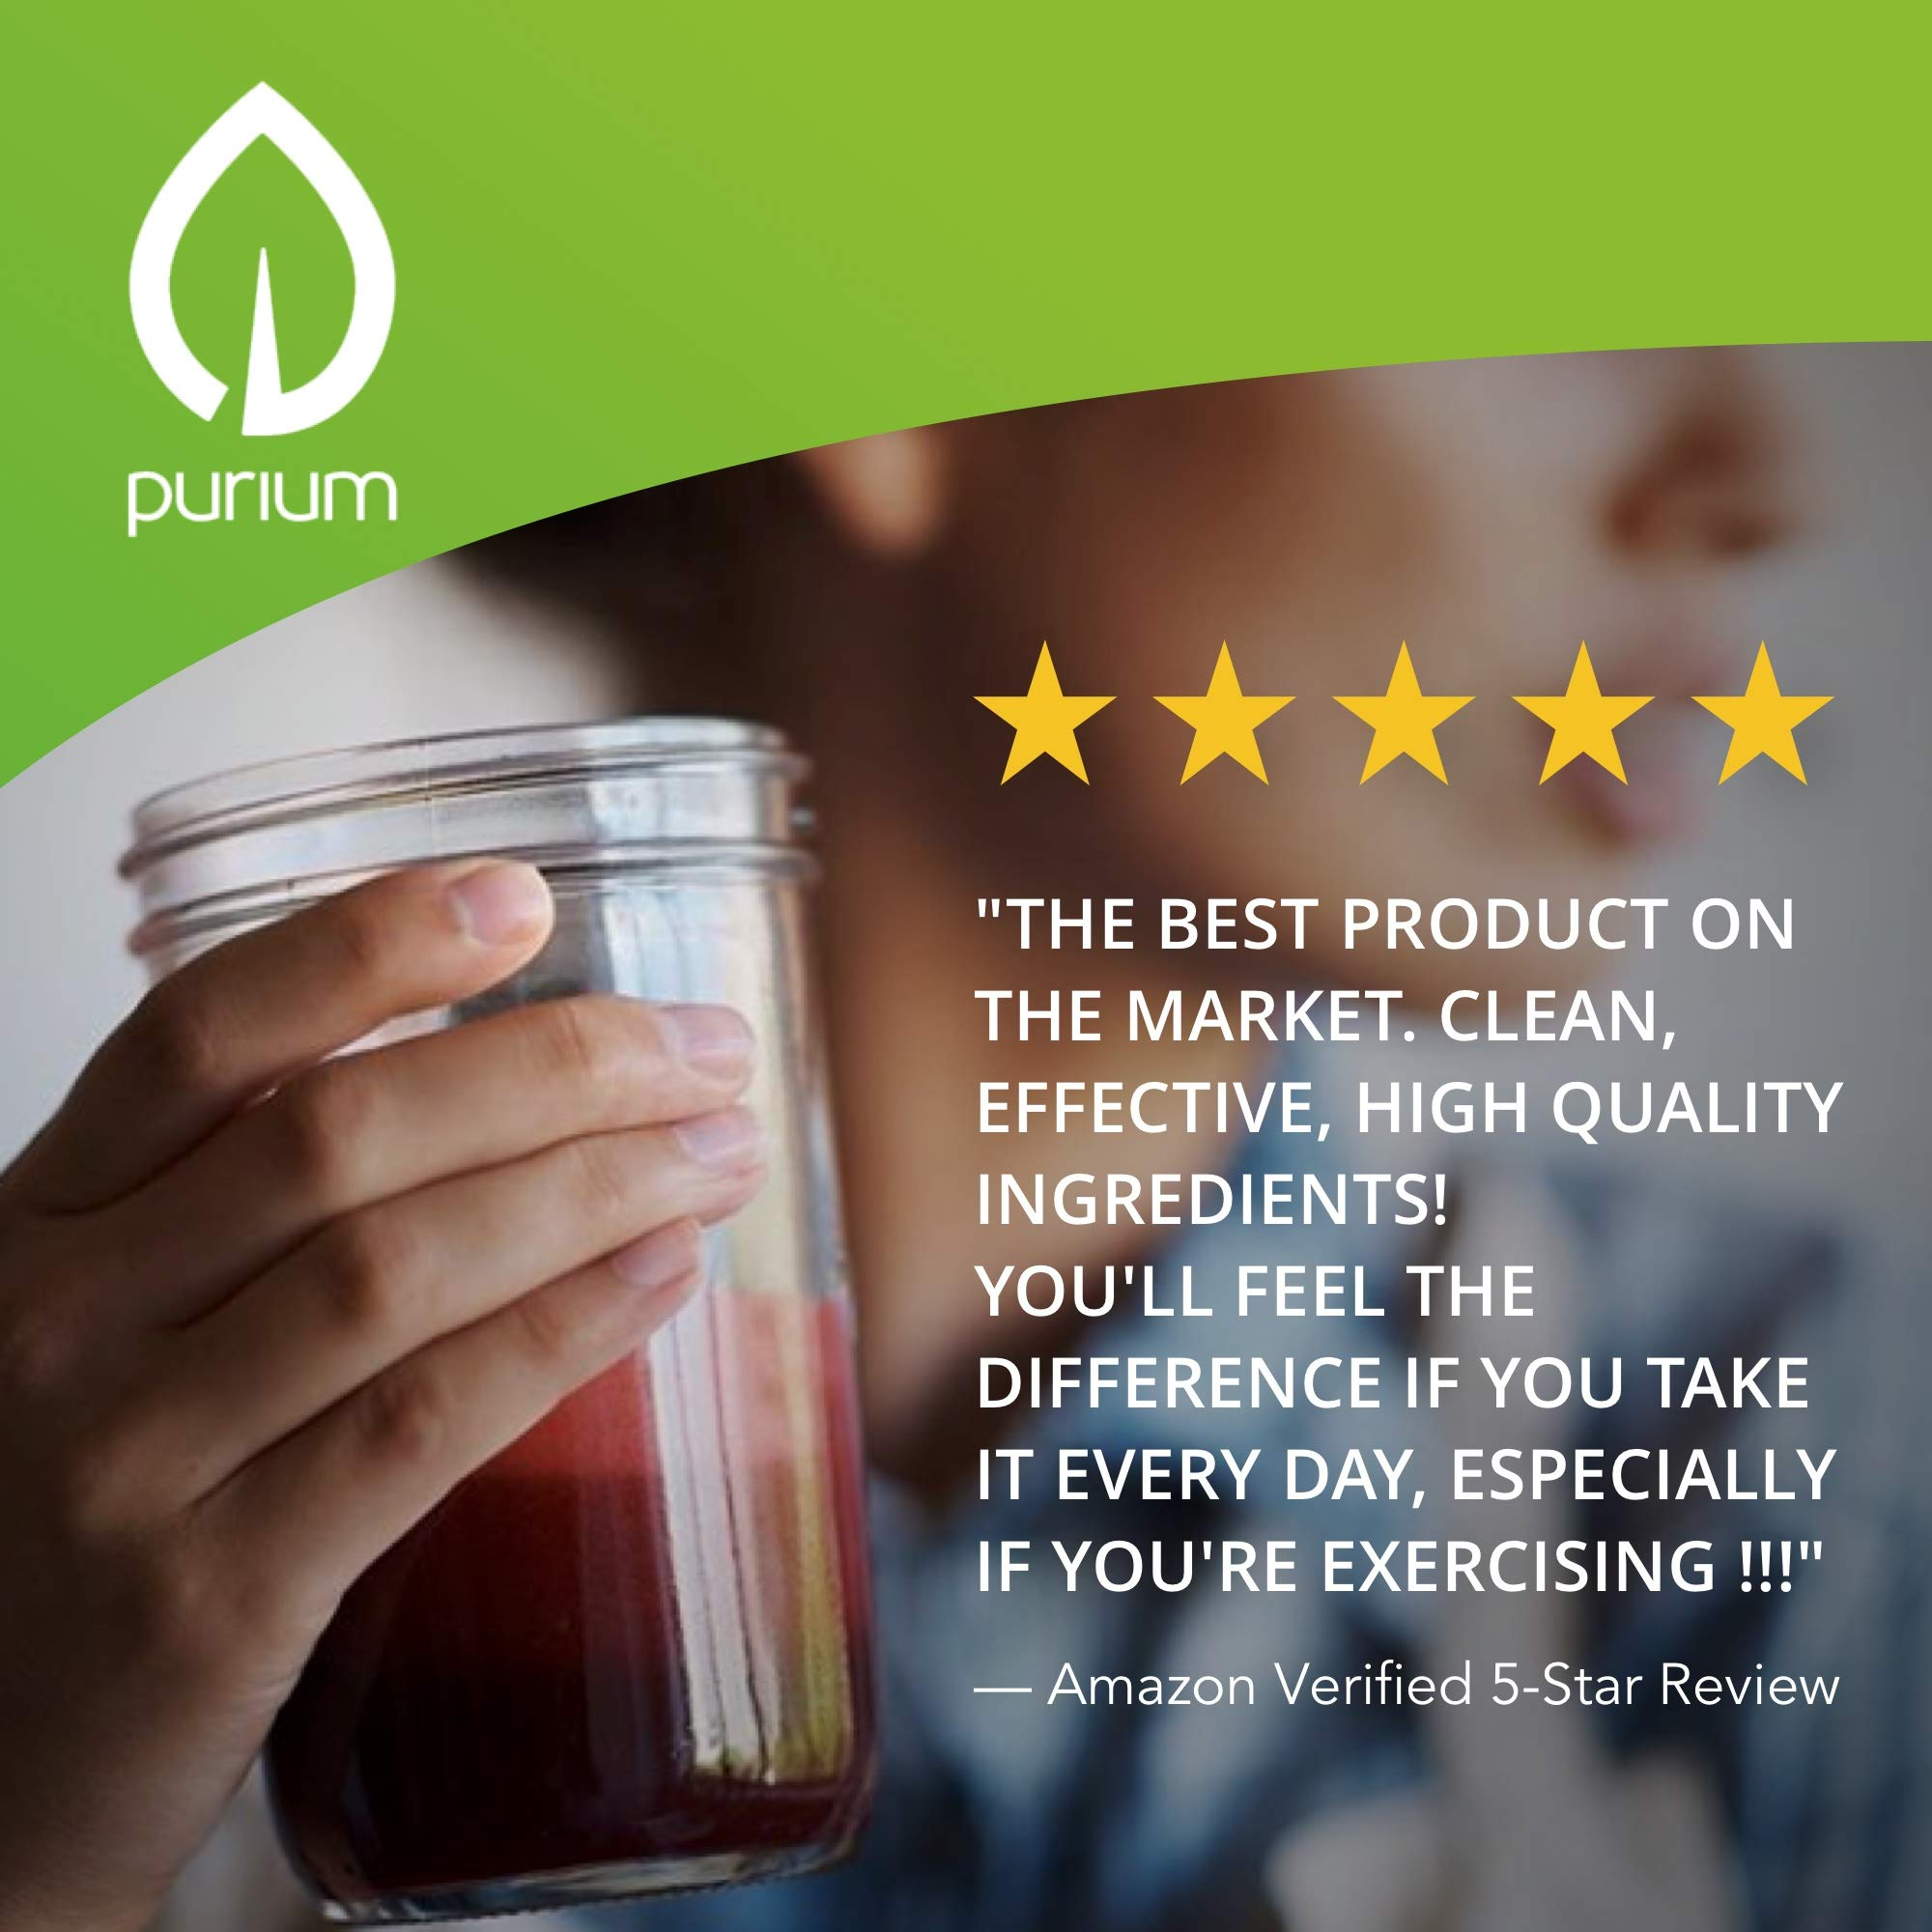 Purium Power Shake - Apple Berry Flavor - 1065 grams - Vegan Meal Replacement Powder, Protein, Vitamins & Minerals - Certified USDA Organic, Gluten Free, Kosher - 30 Servings by Purium (Image #2)